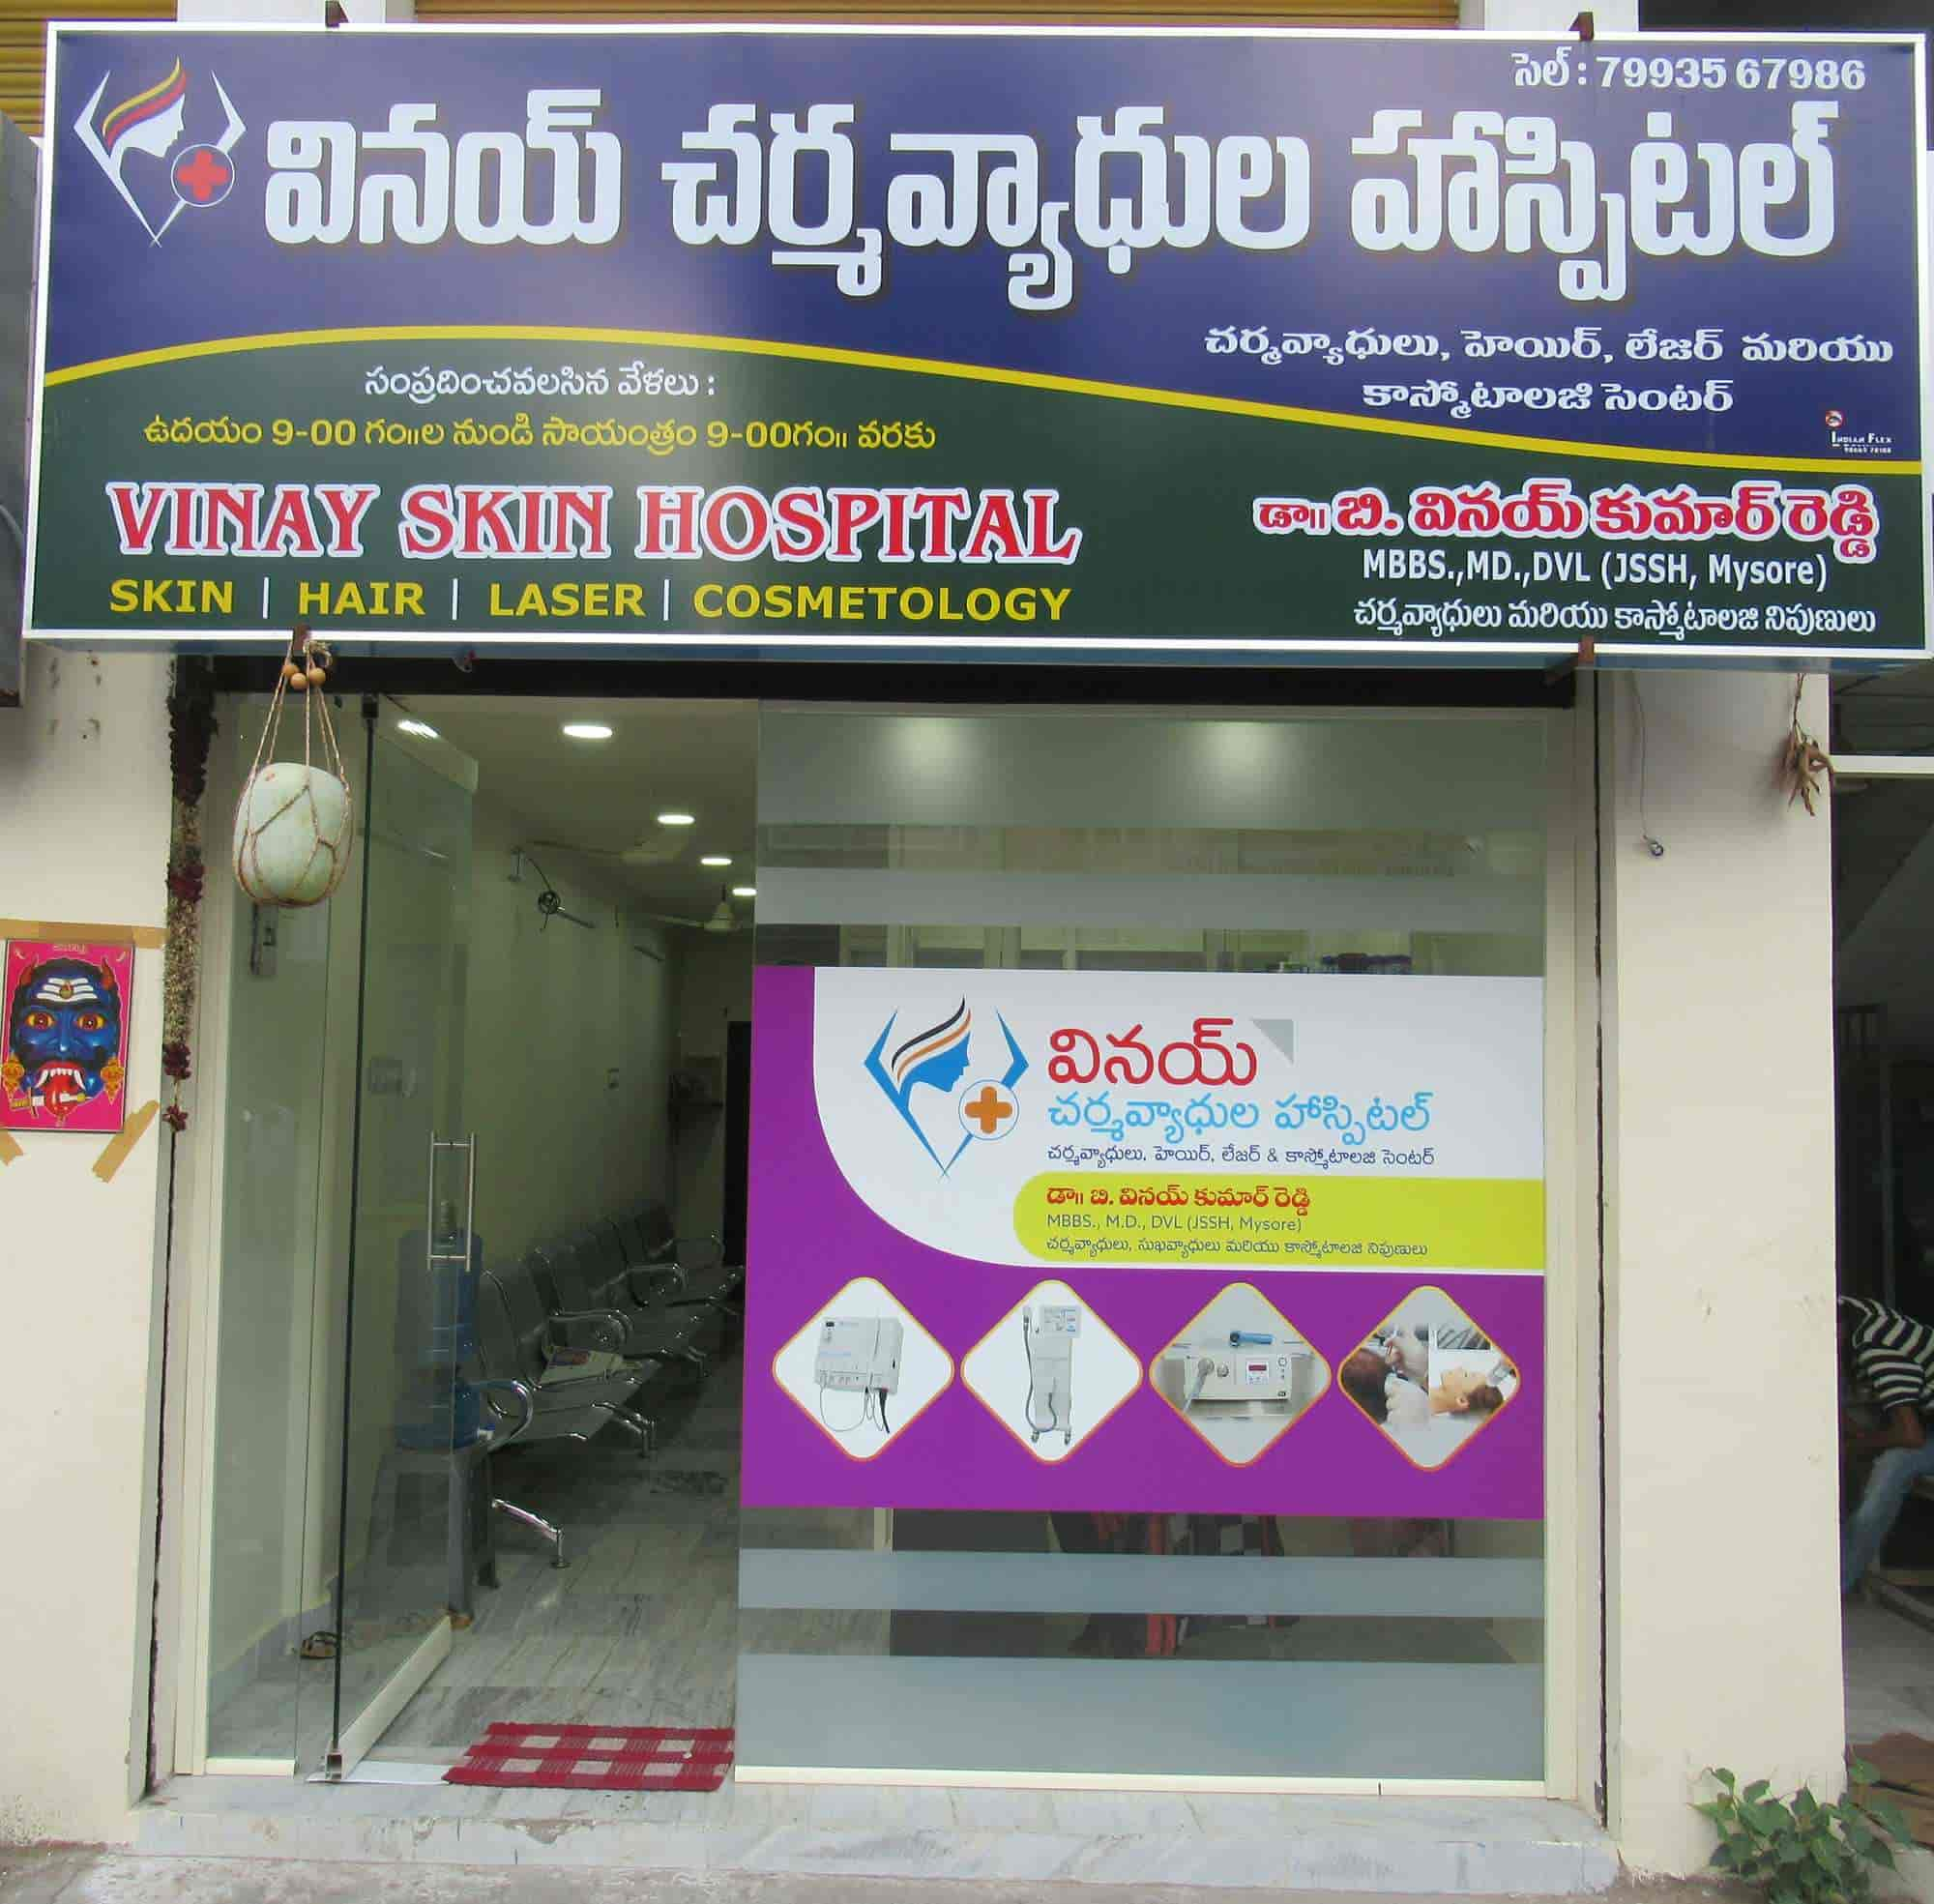 Top 100 Hospitals in Ongole - Best 24 Hours Hospitals - Book